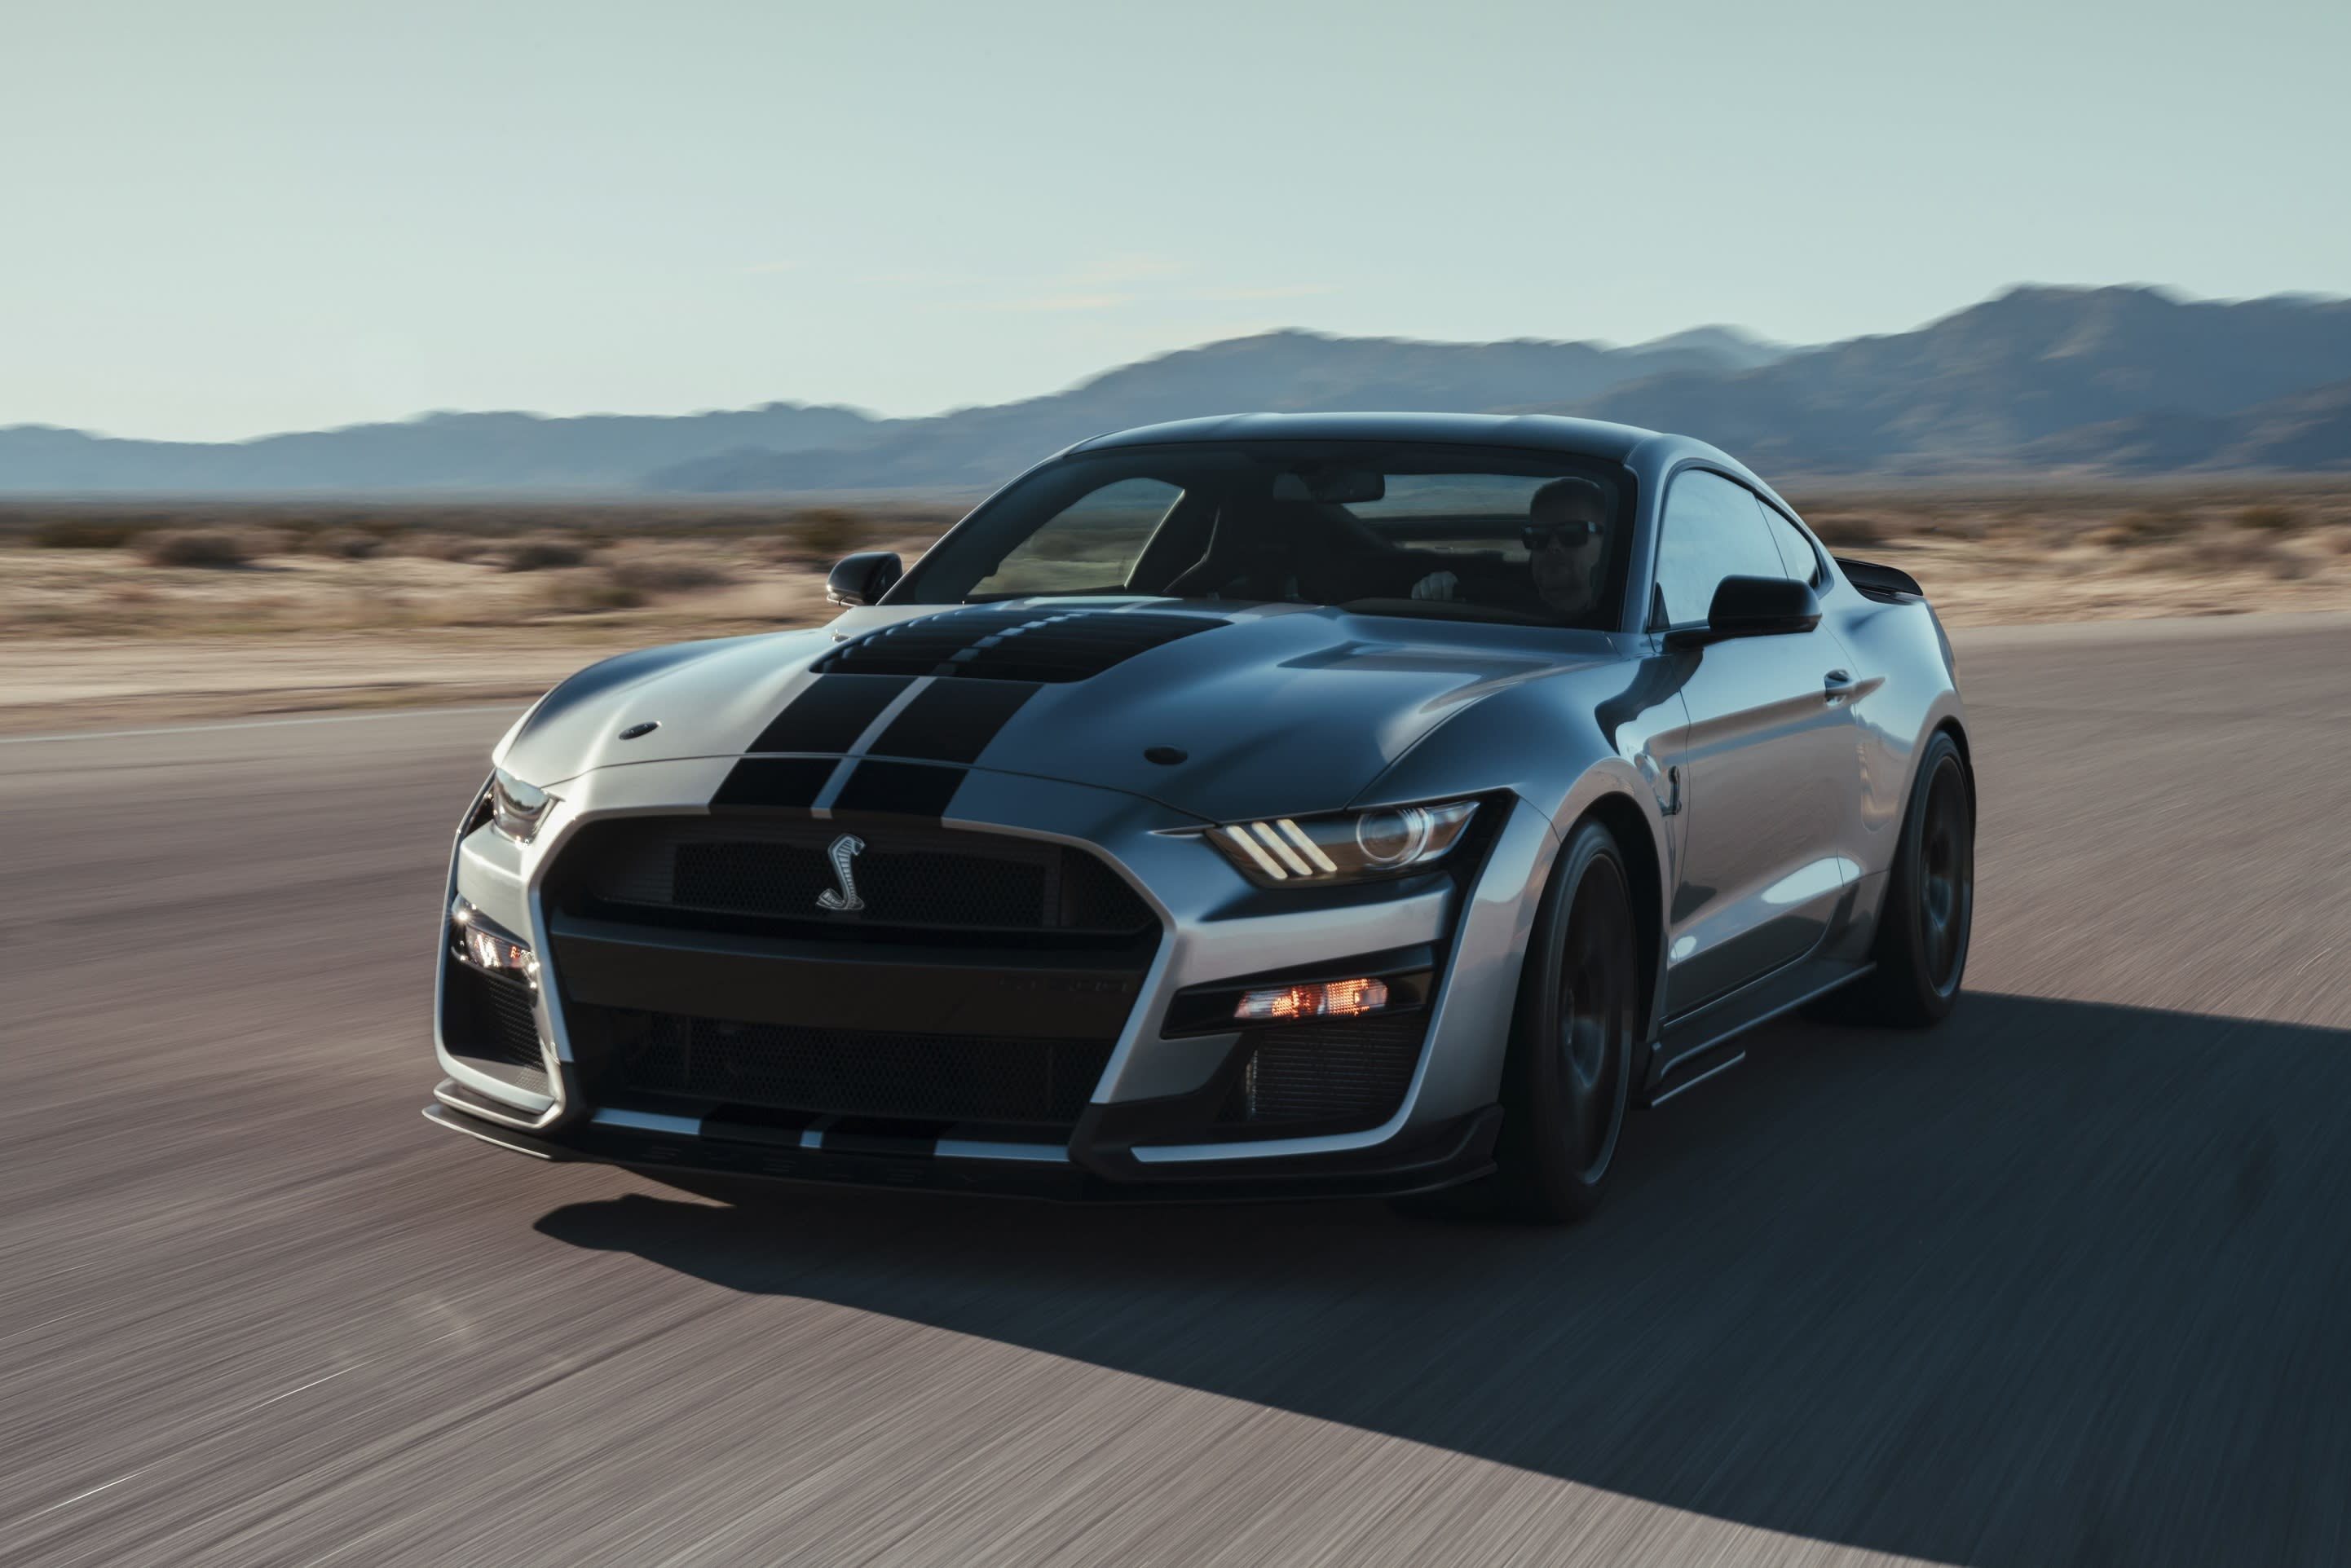 Ford Mustang Shelby >> The 2020 Ford Mustang Shelby Gt500 Is The Brand S Most